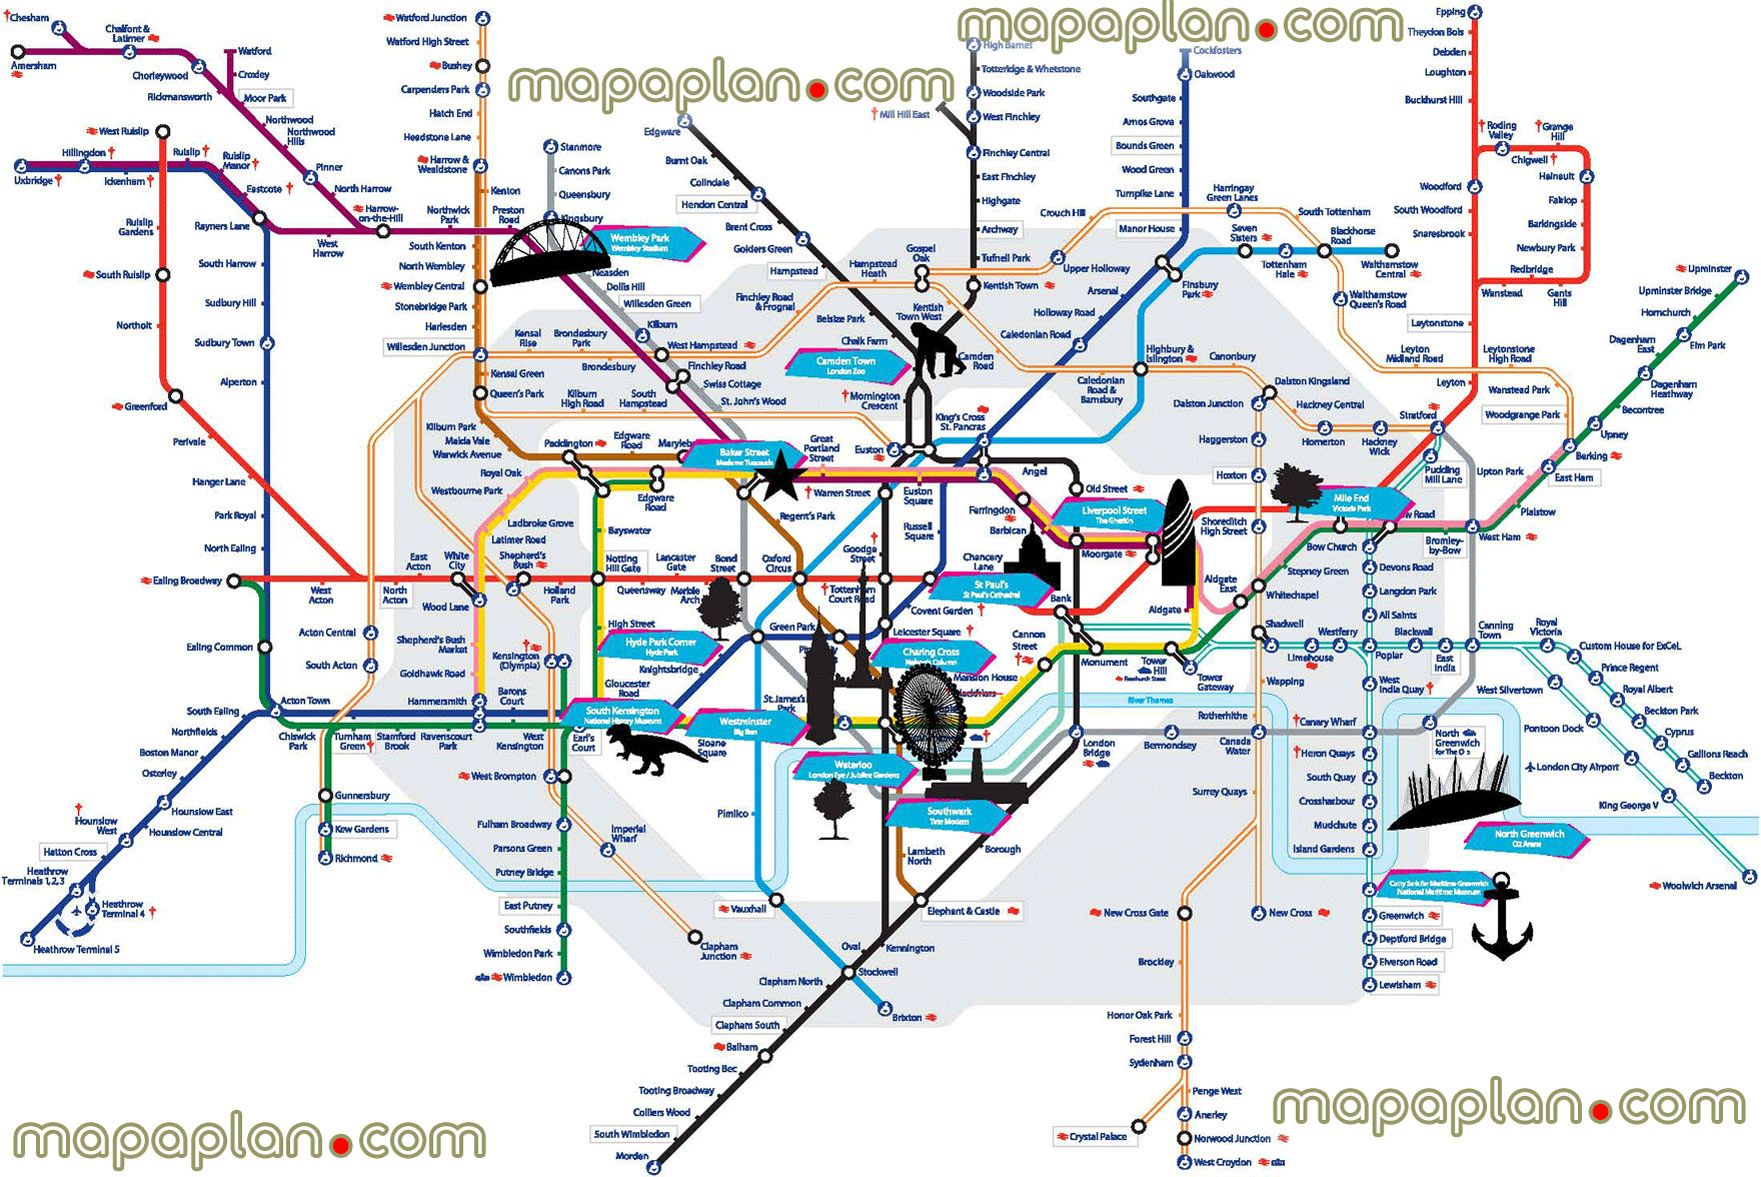 tube tourist spots points interest overlay greenwich national